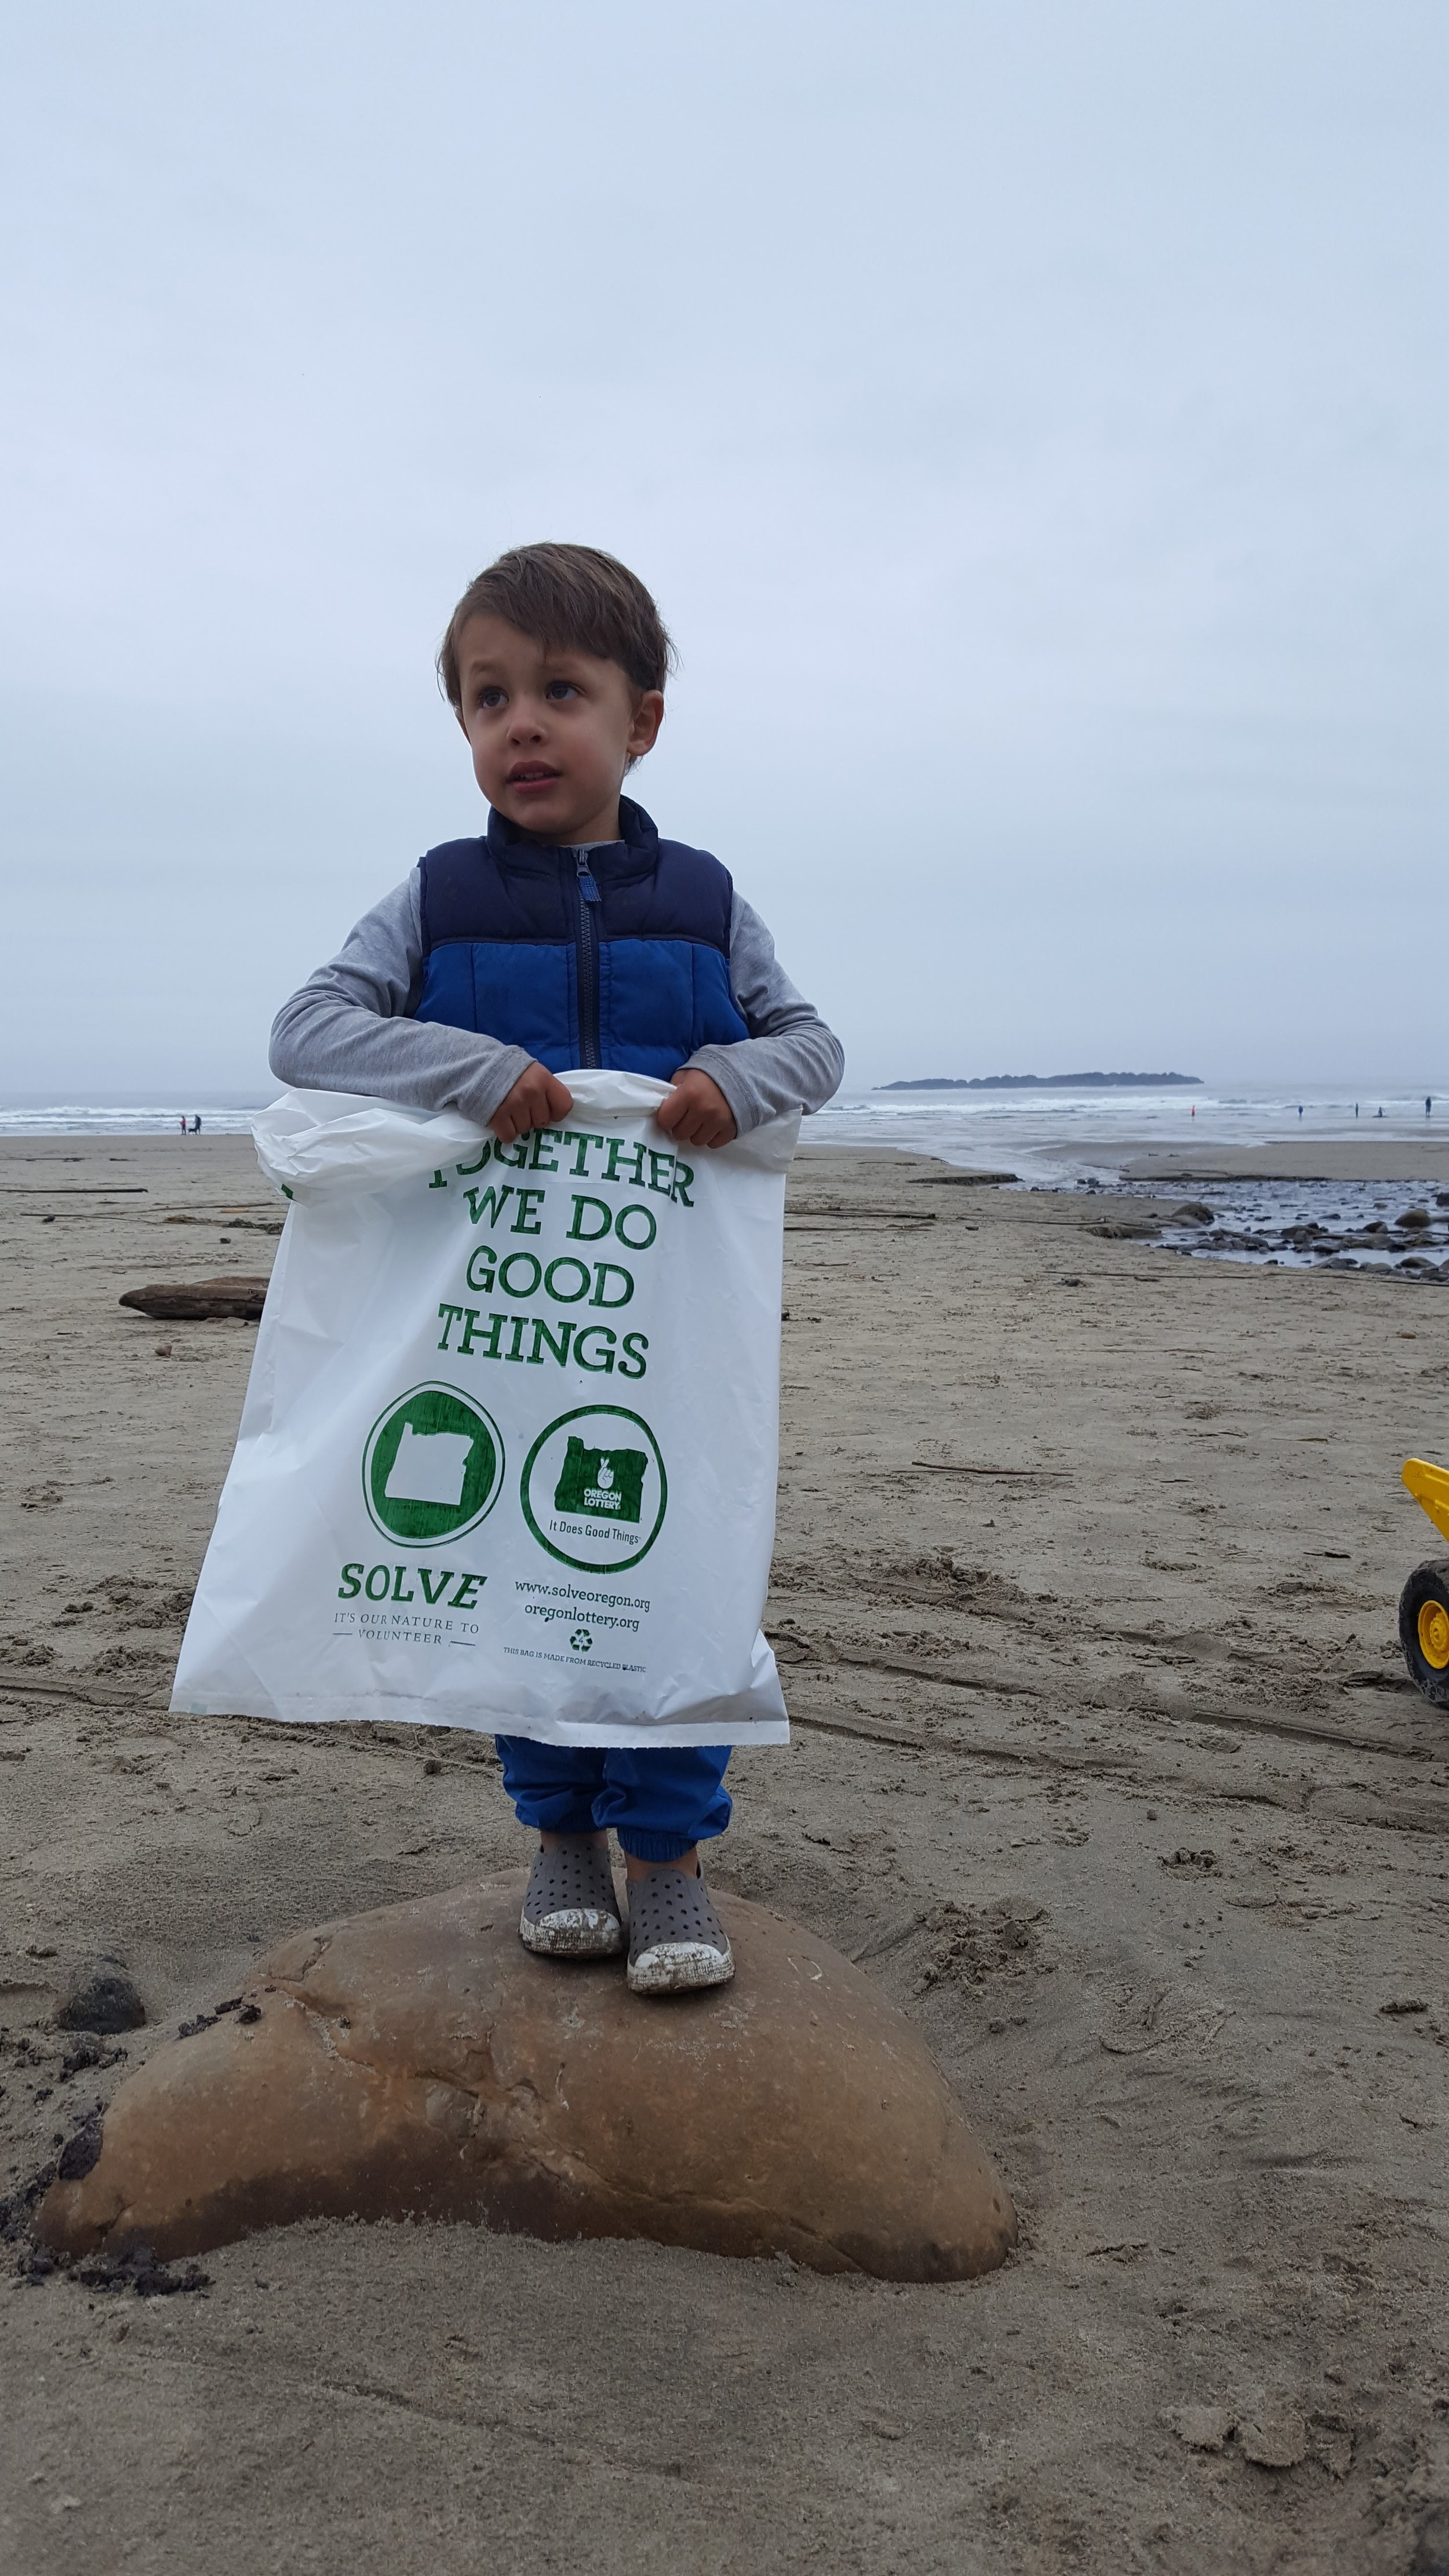 Day 75: Signed Up For Beach Clean-Up